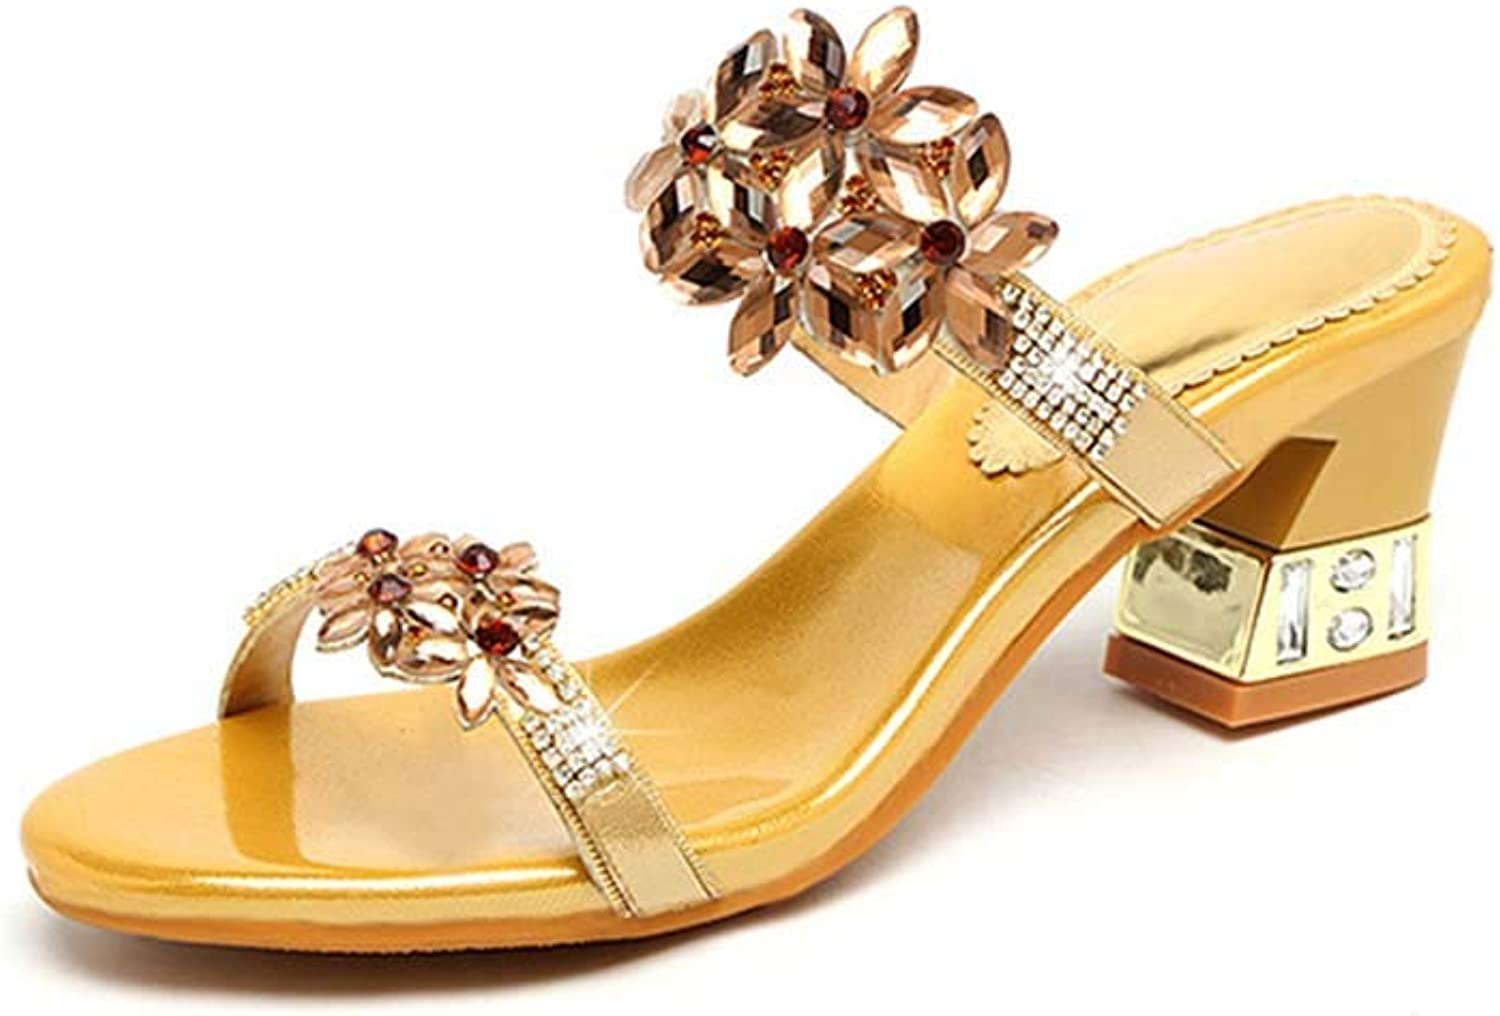 Women's Sandals Leather Rhinestone Thick with Sandals and Slippers high-Heeled Words Flowers Fashion Slippers Summer New